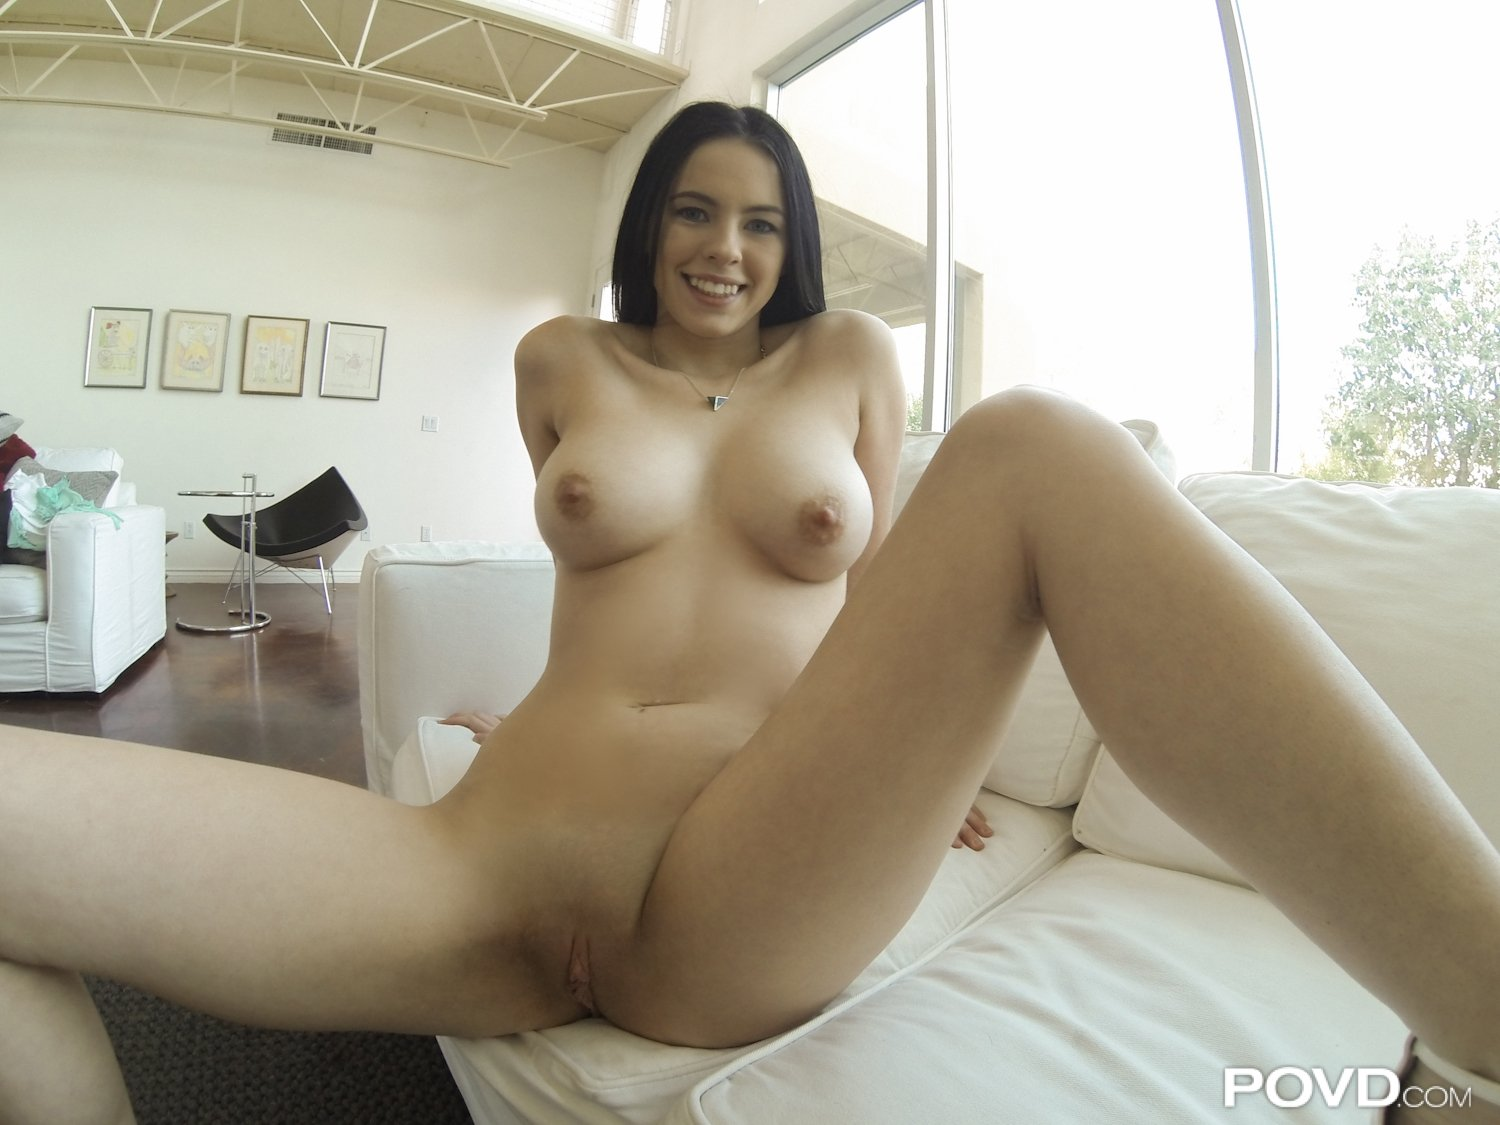 Heavy period sex with wife